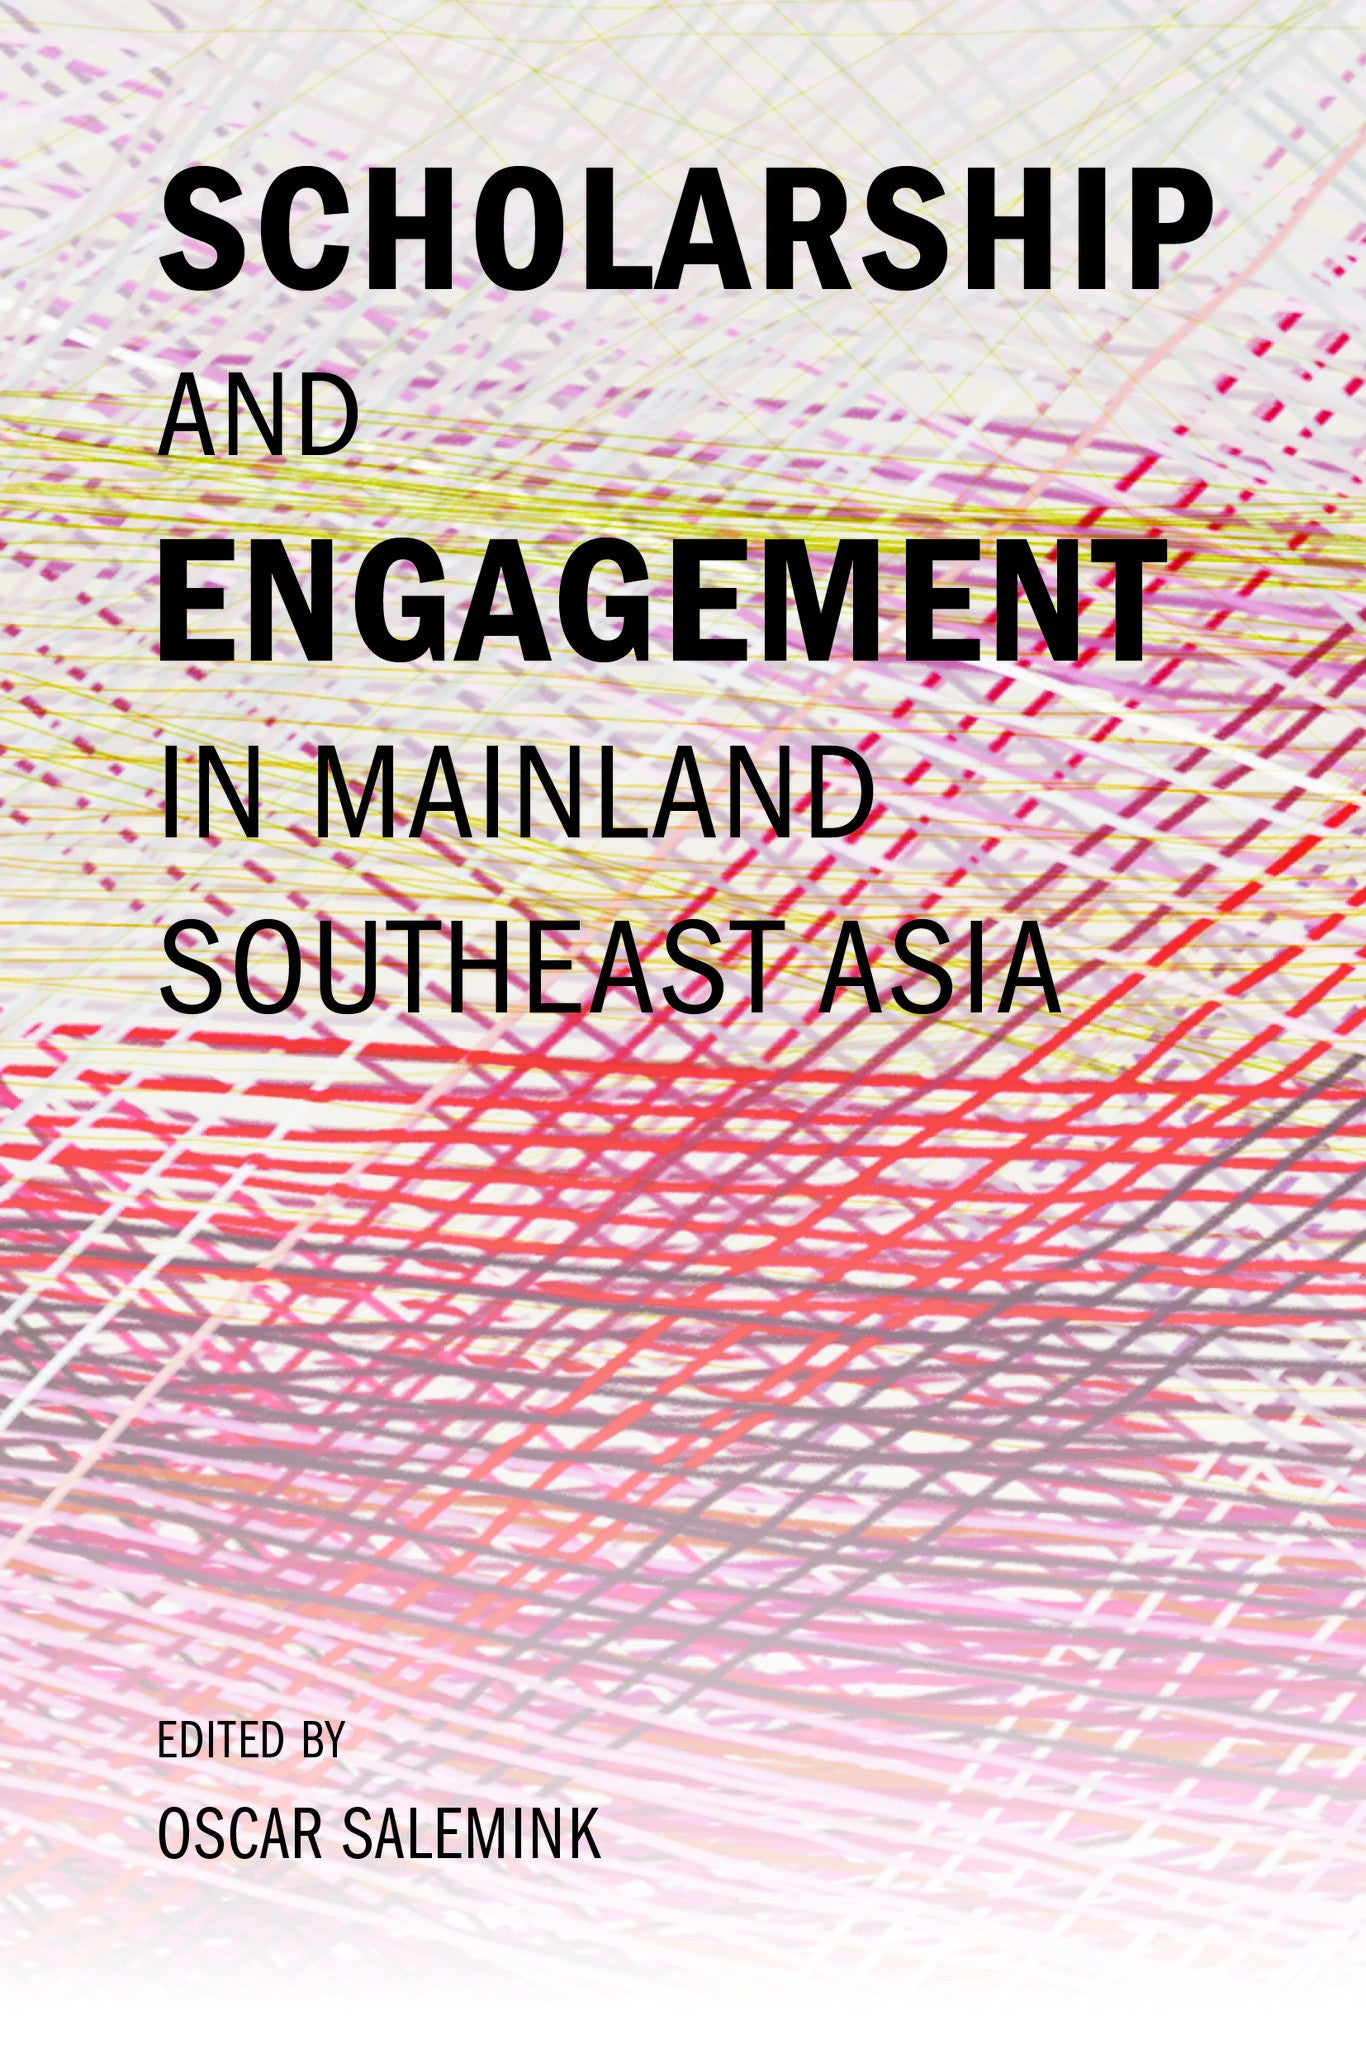 Image result for Scholarship and Engagement in Southeast Asia